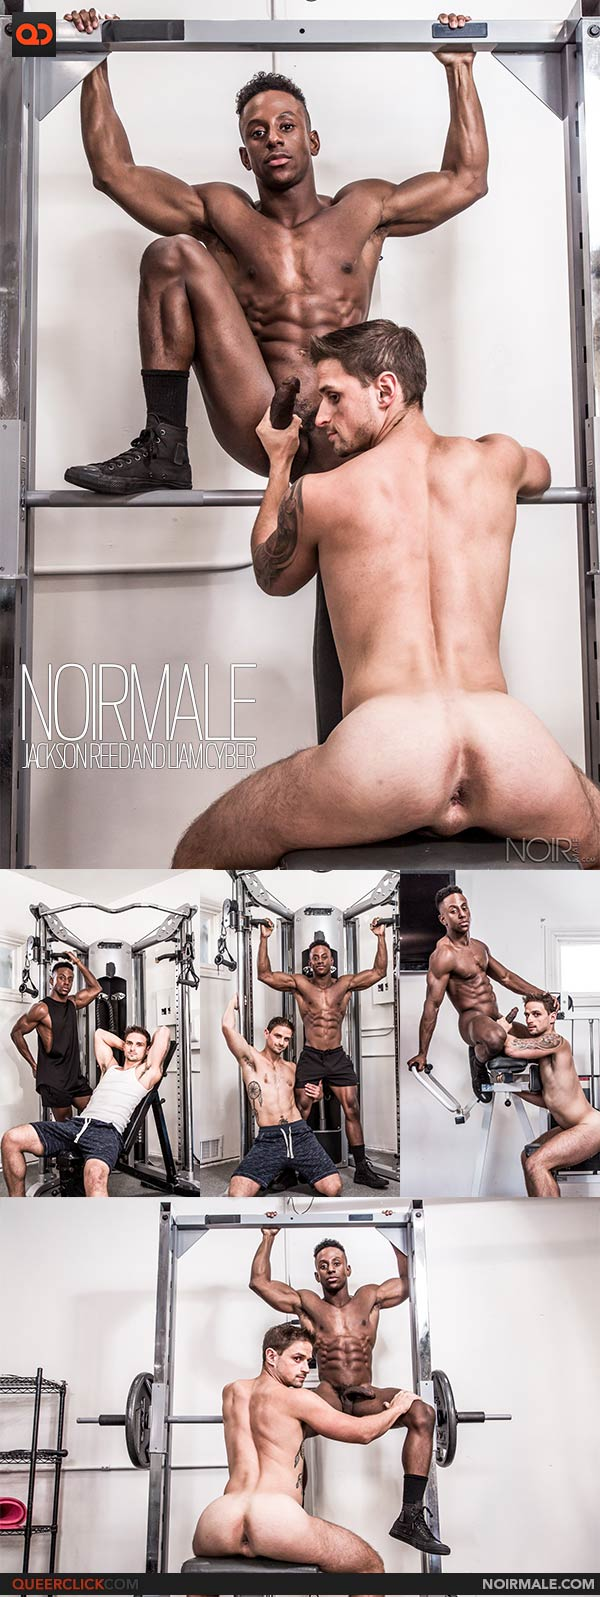 Noir Male: Jackson Reed and Liam Cyber